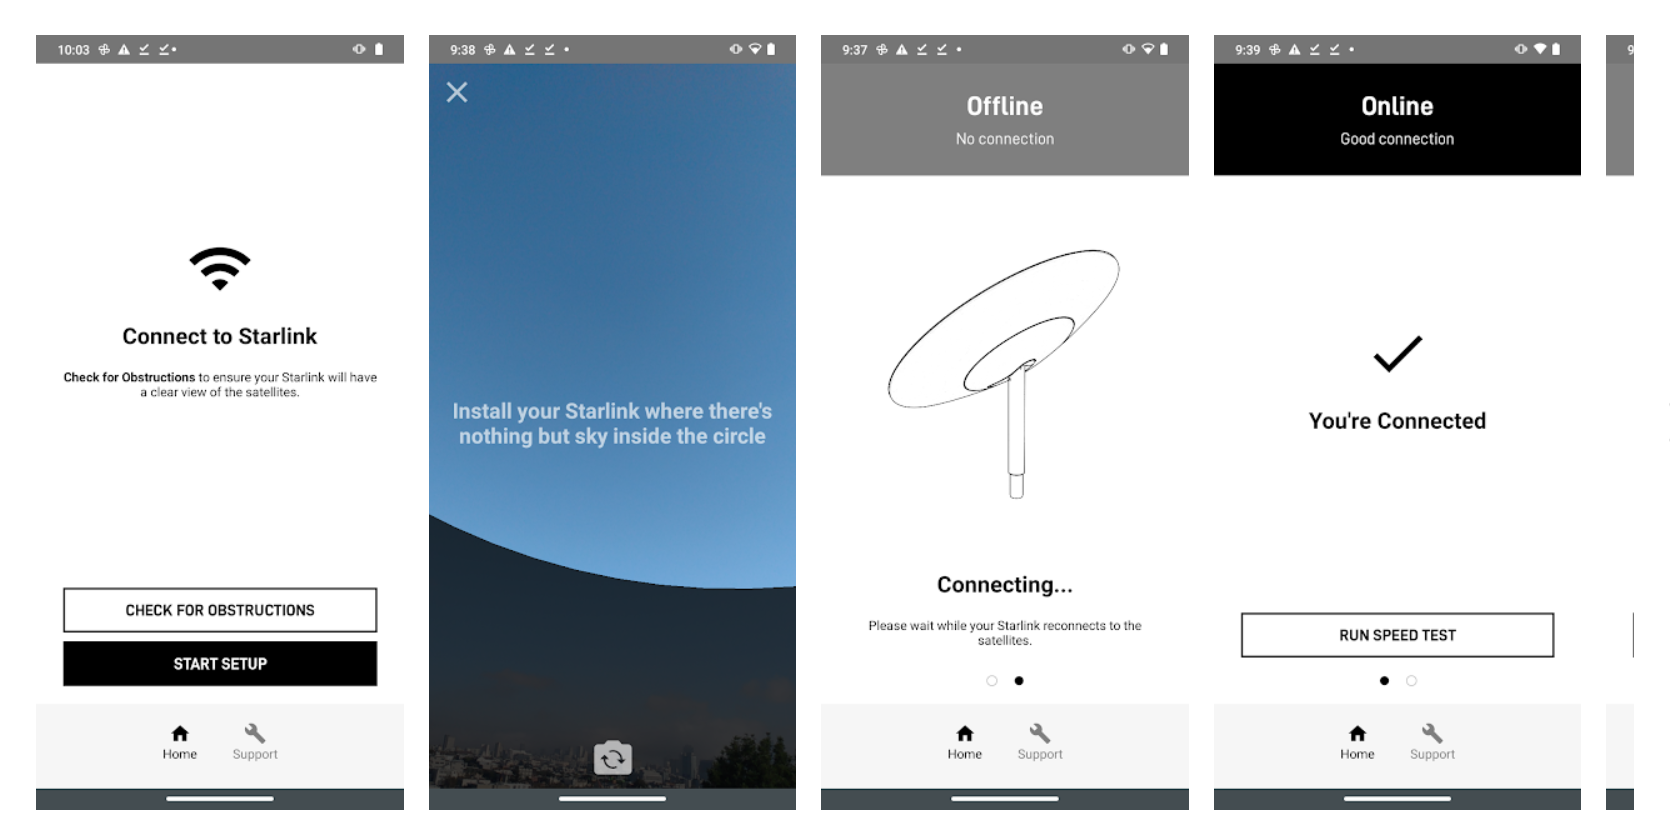 Starlink Android app Oct 2020 (SpaceX) 2